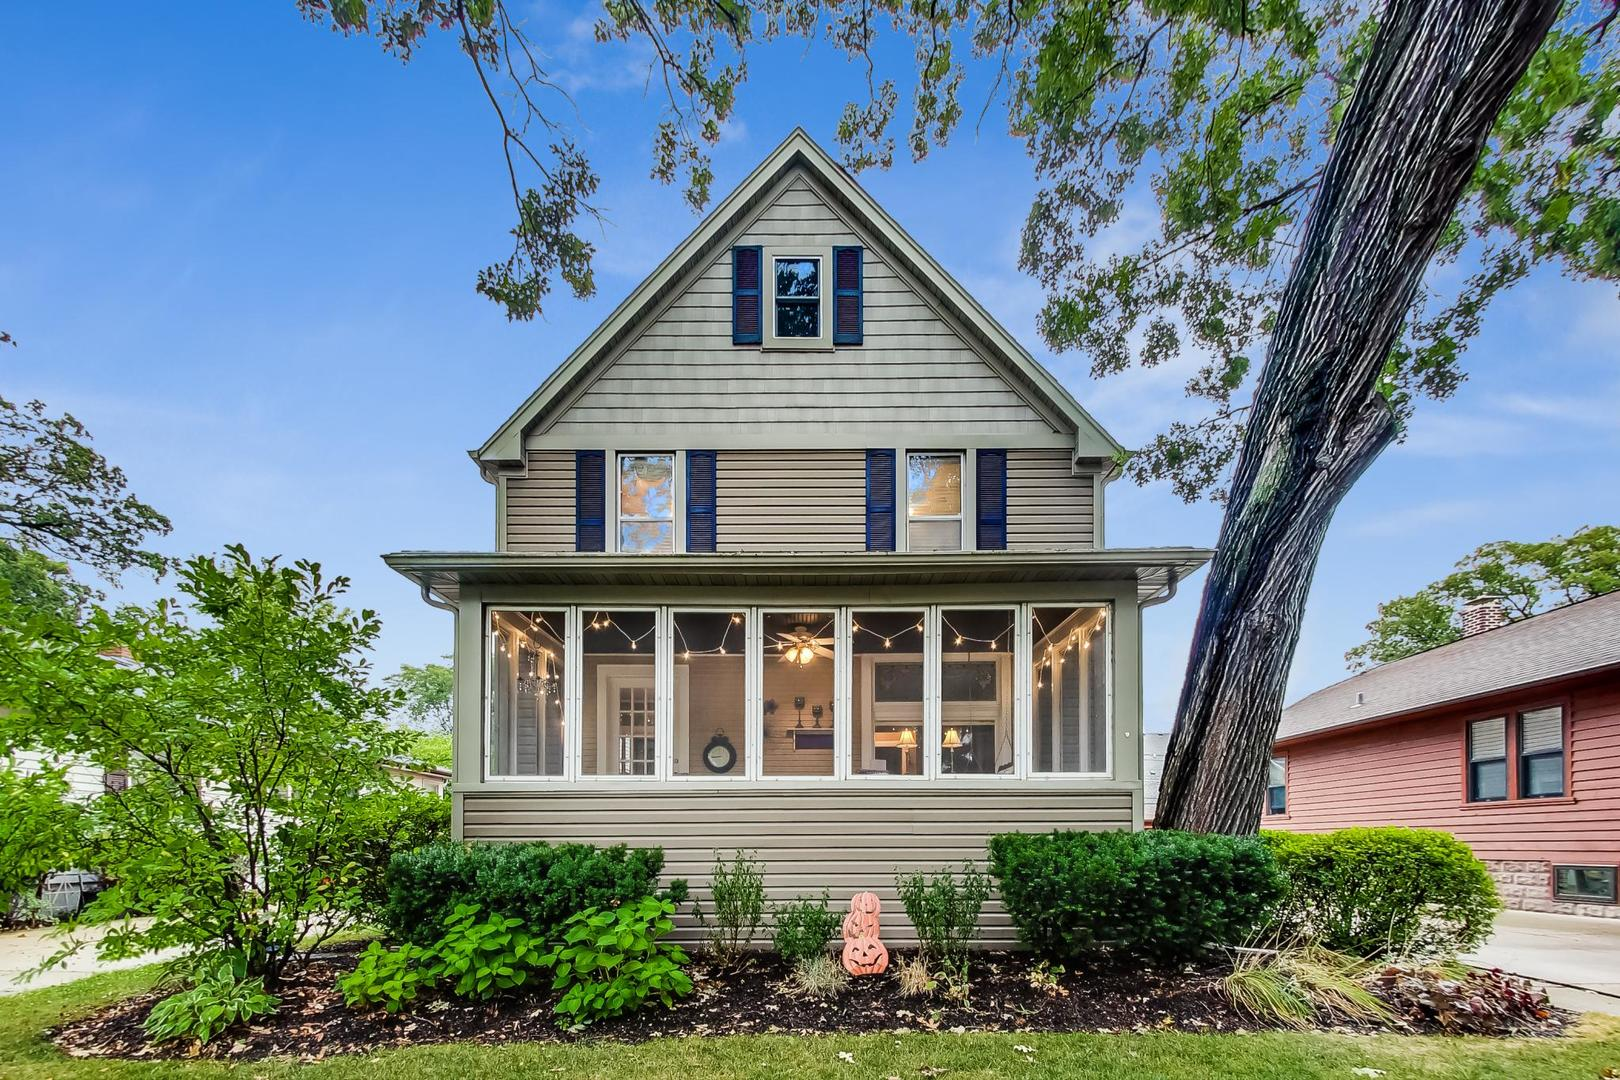 Photo for 4929 Middaugh Avenue, Downers Grove, IL 60515 (MLS # 10846755)